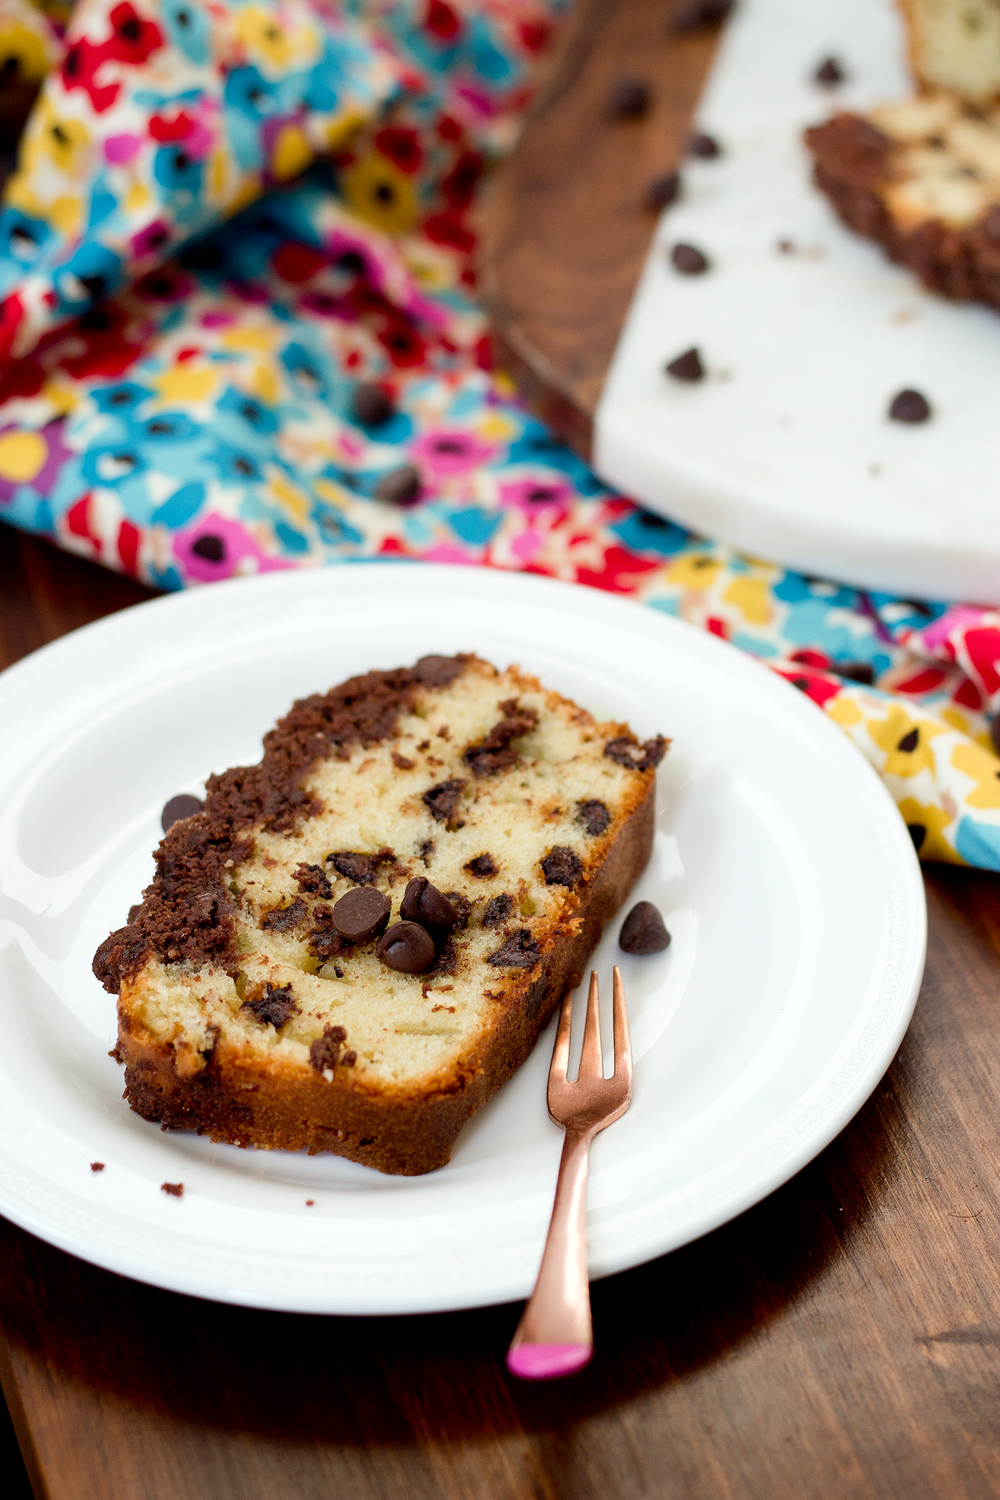 Chocolate Chip Loaf Cake from UnusuallyLovely.com